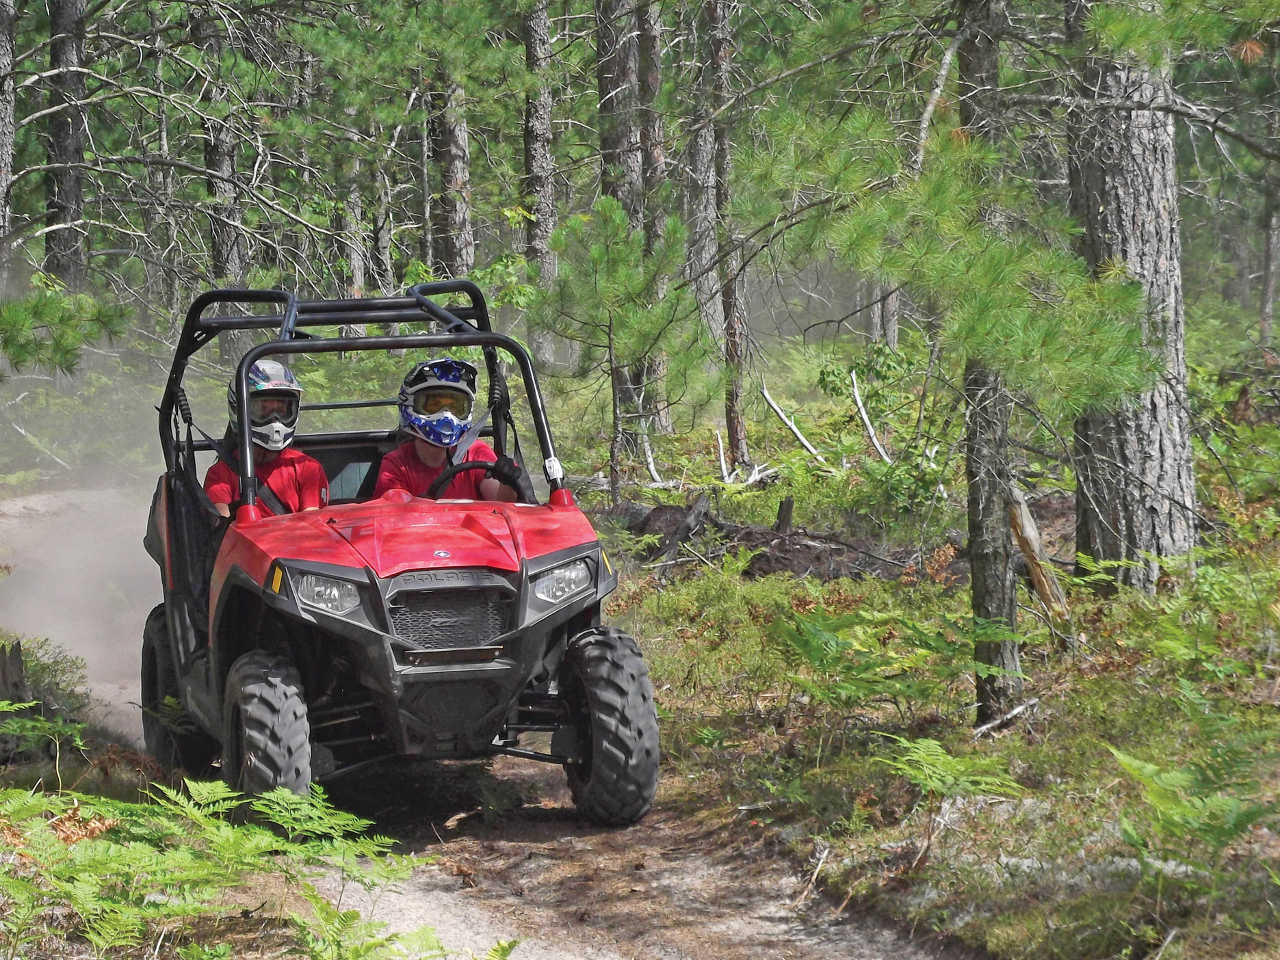 hight resolution of 2013 polaris rzr570 red front right riding on